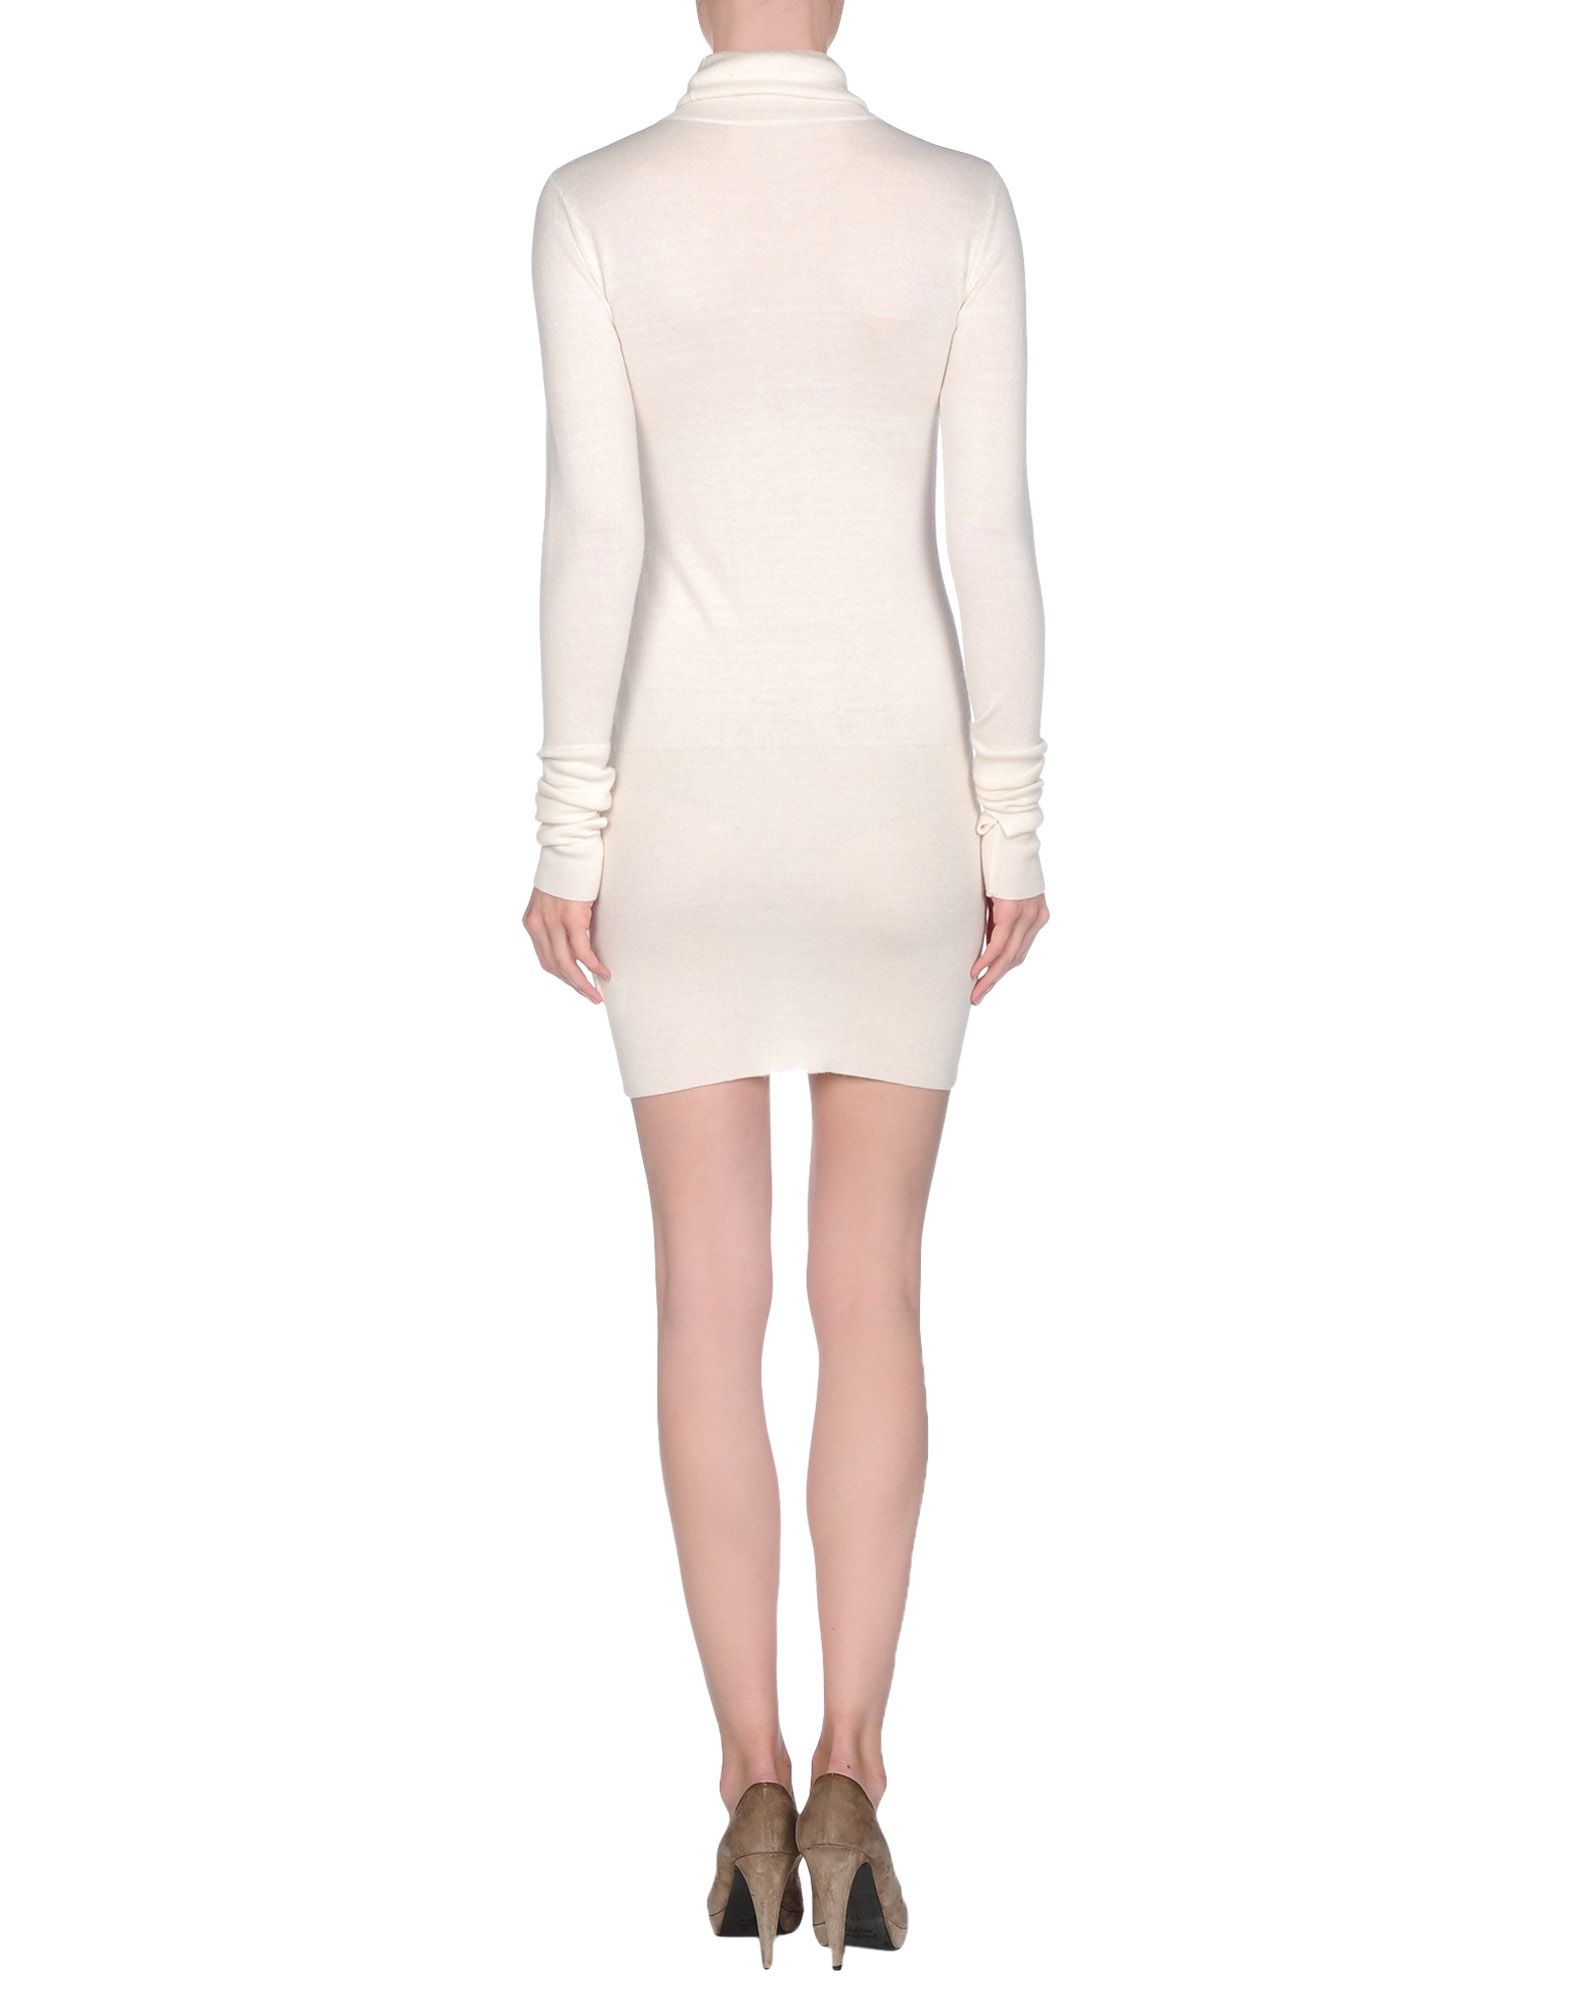 Lyst mm6 by maison martin margiela short dress in white for Mm6 maison margiela